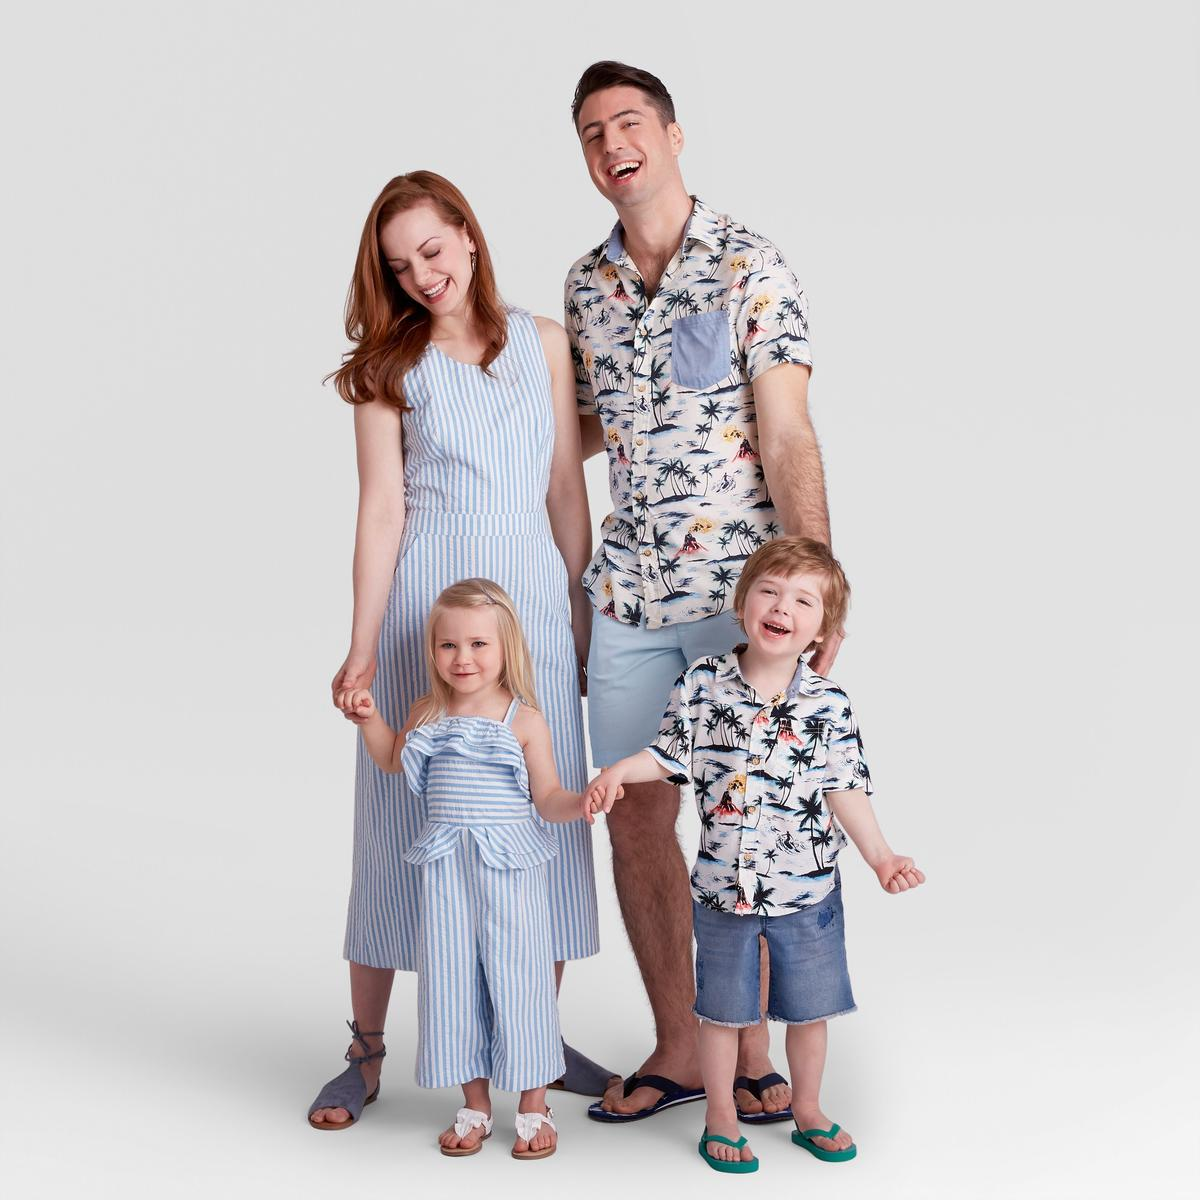 Target's Latest Collection Has the Whole Family Summer Barbecue Ready in Effortless Matching Outfits